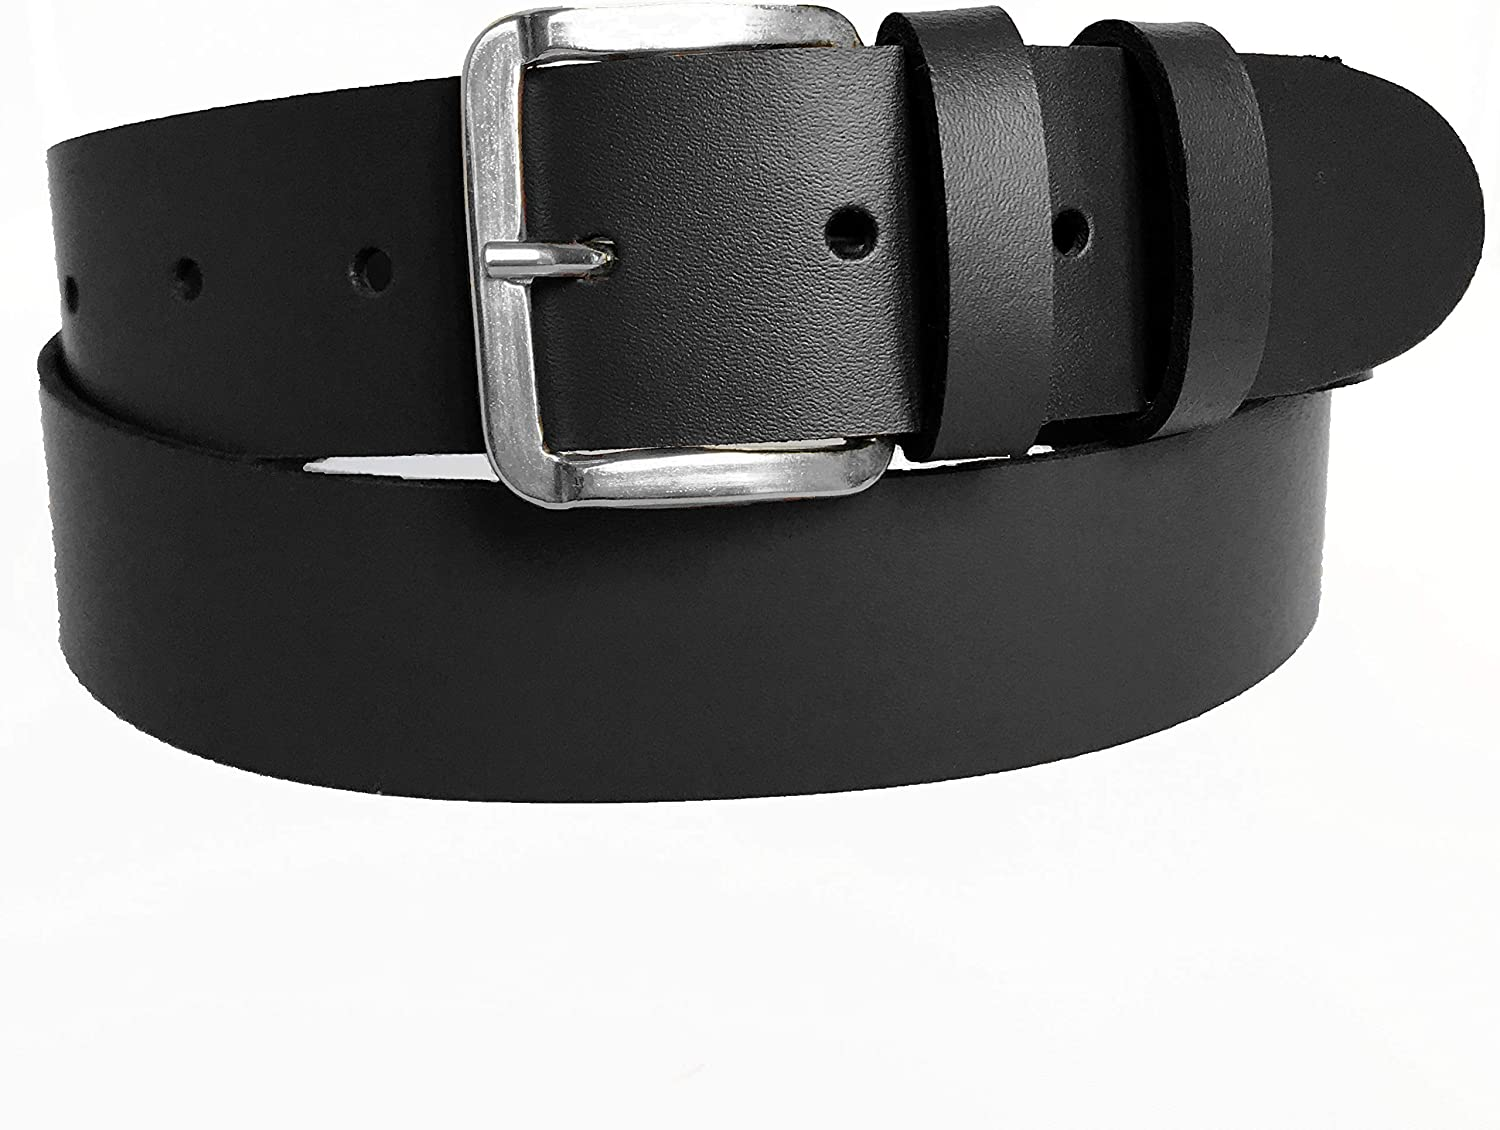 Women's Black Leather Jeans Belt 38mm Wide Sizes UK8 UK26 Silver Buckle 100% Real Leather Handmade in UK.